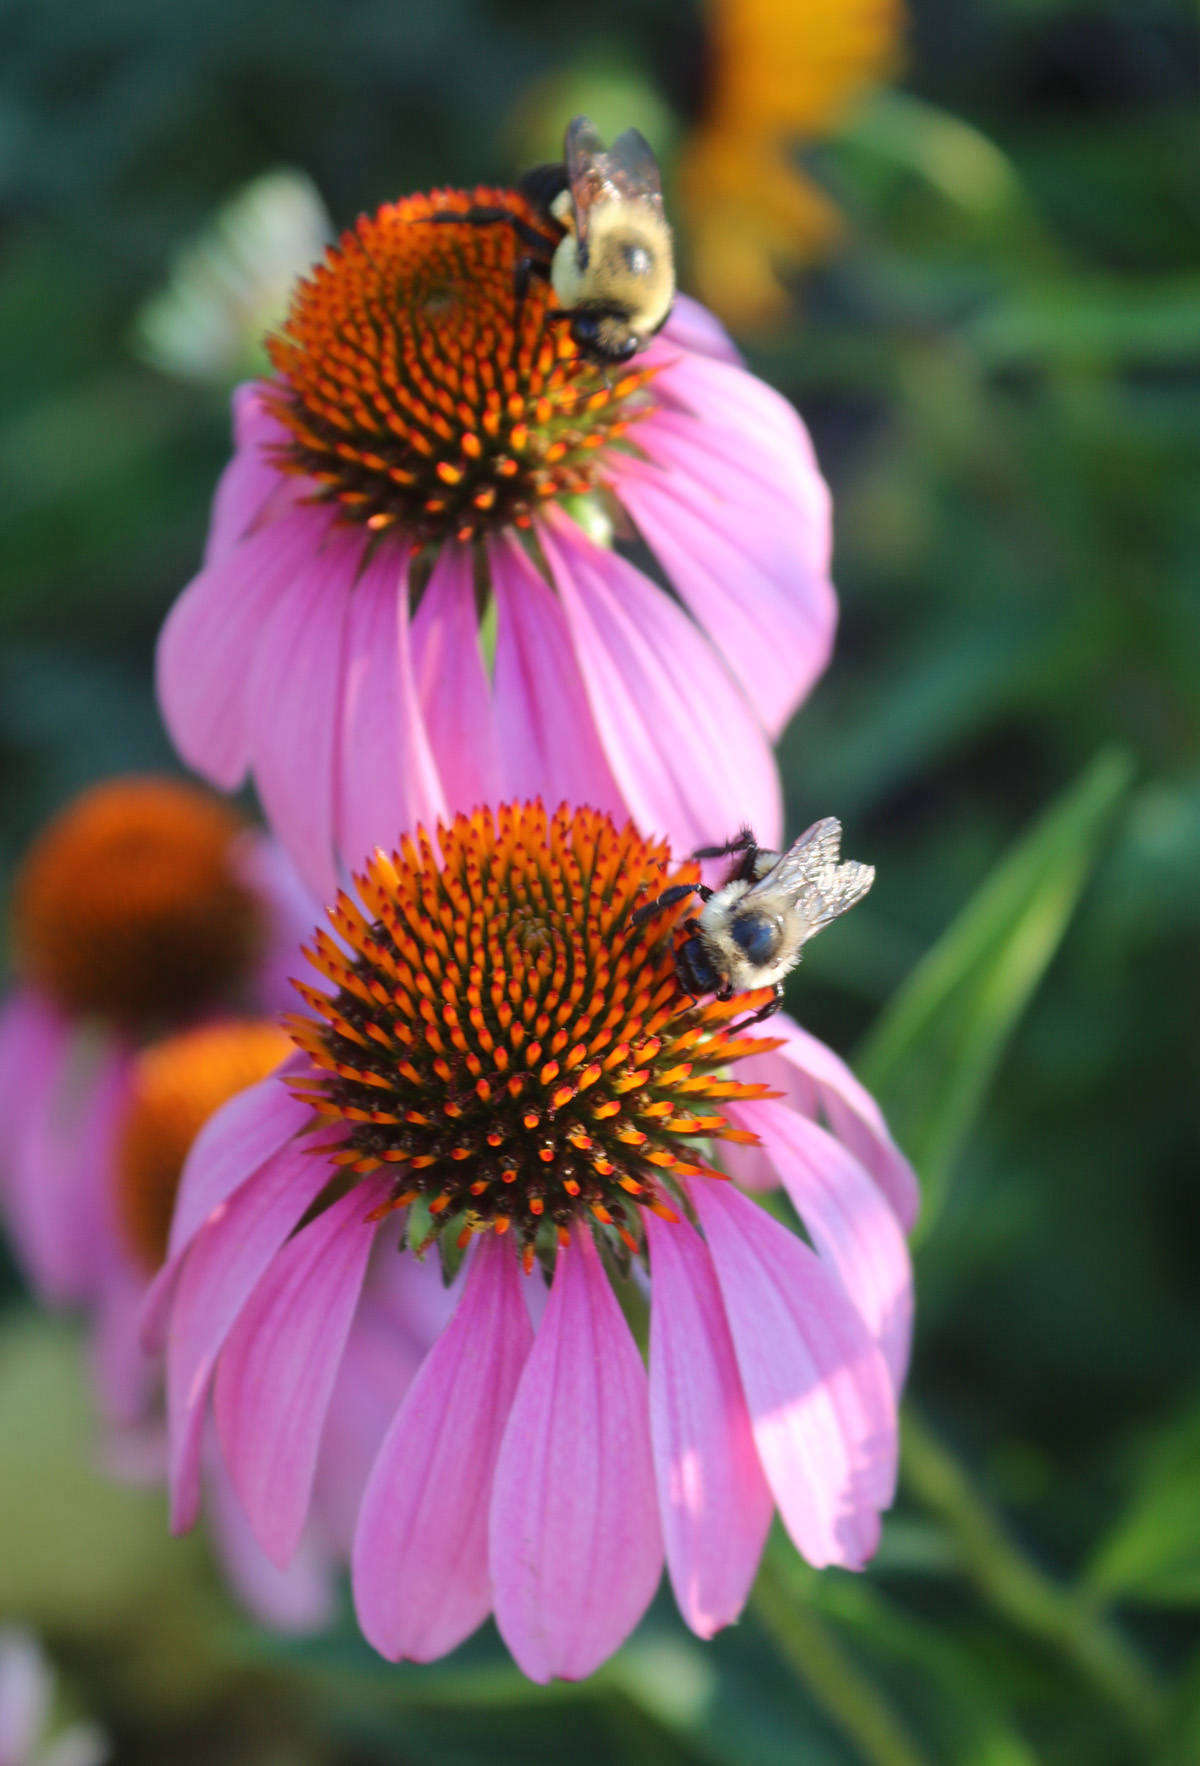 Attracting bees and beneficial insects boosts local biodiversity.